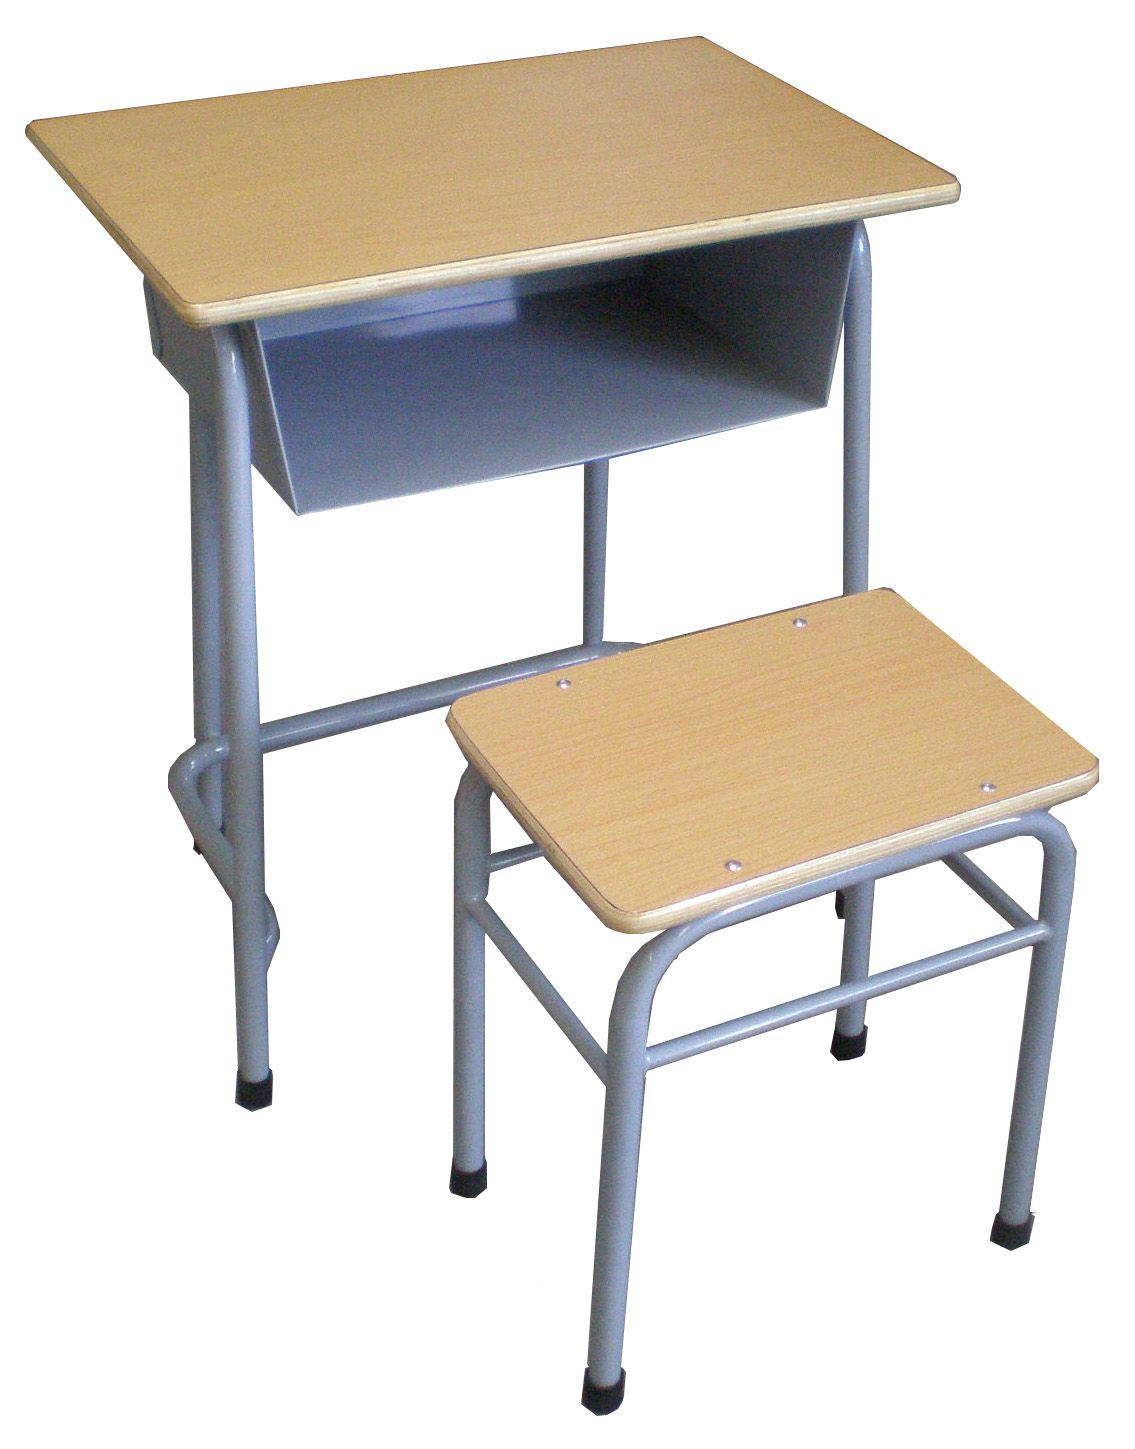 china school desk and chair g2177 2 photos pictures made in. Black Bedroom Furniture Sets. Home Design Ideas